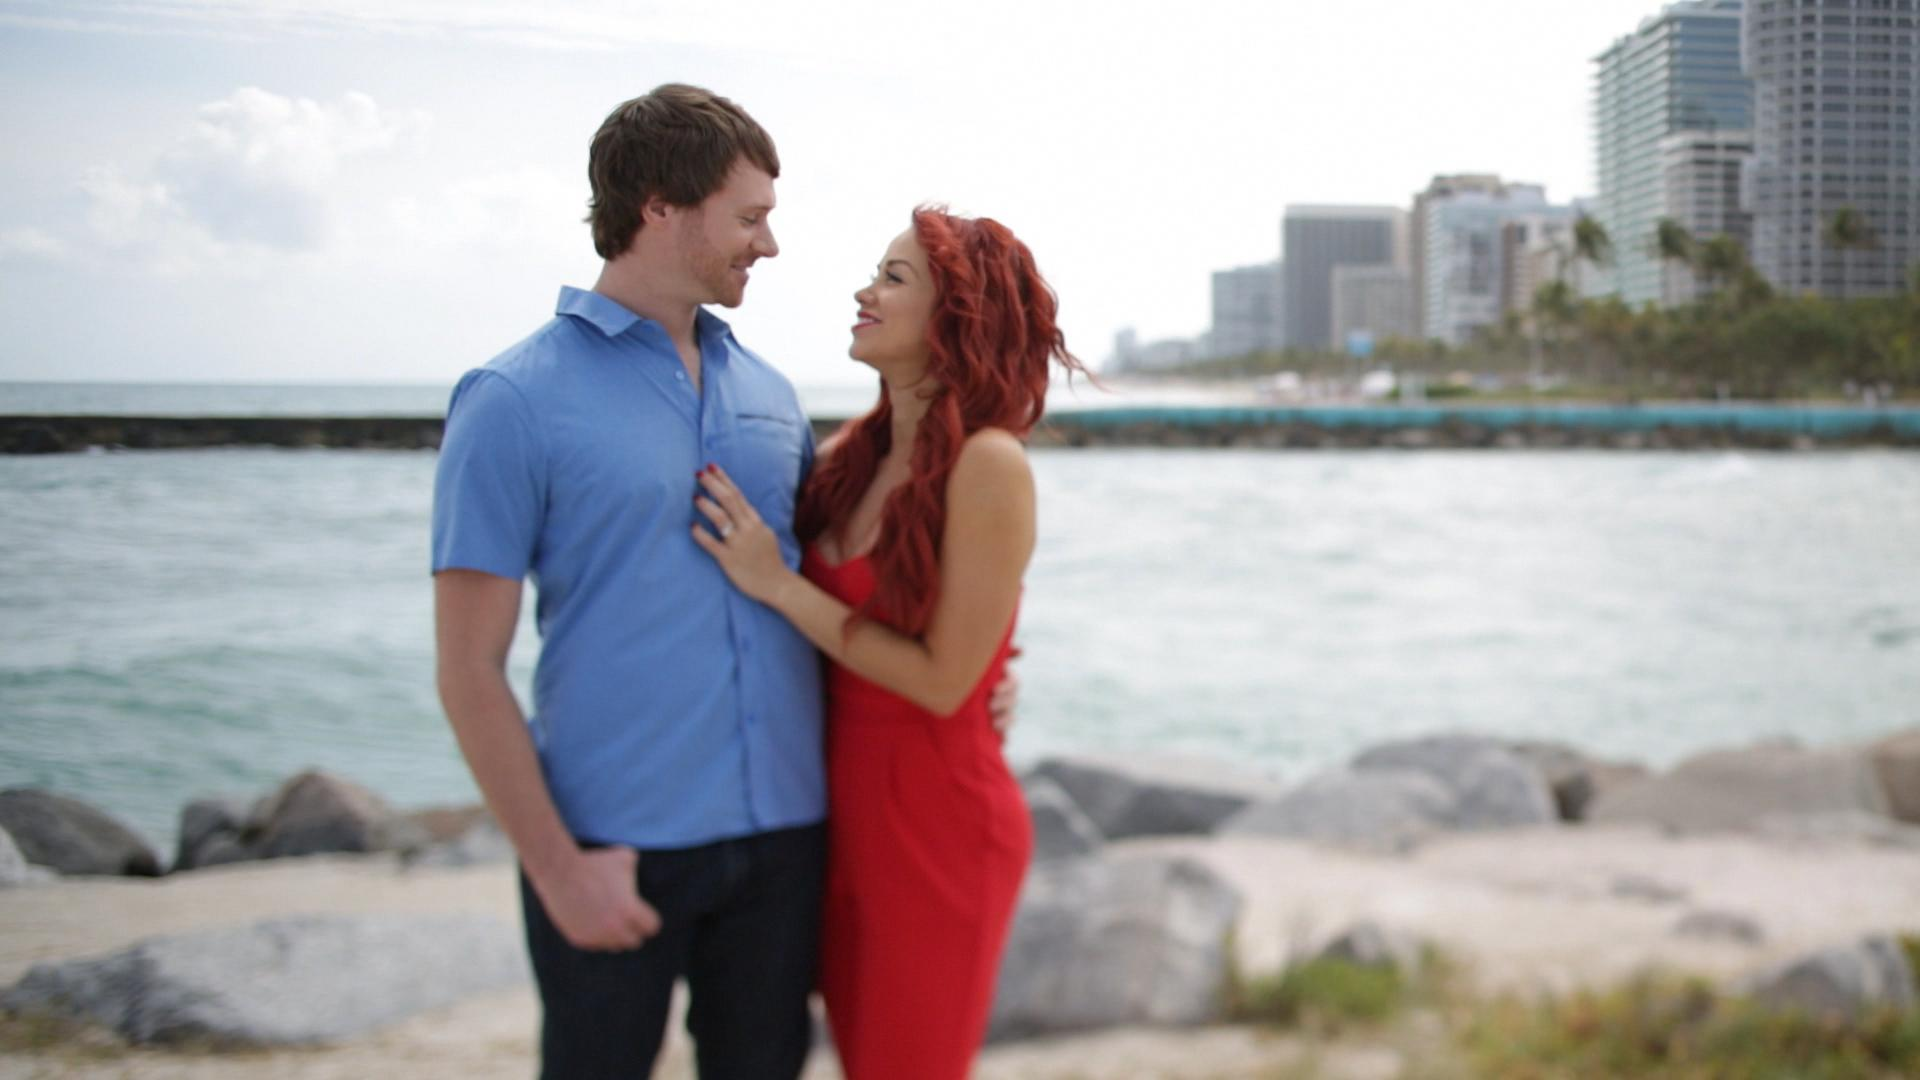 Did '90 Day Fiancé' Star Anfisa Arkhipchenko Shade Paola Mayfield On